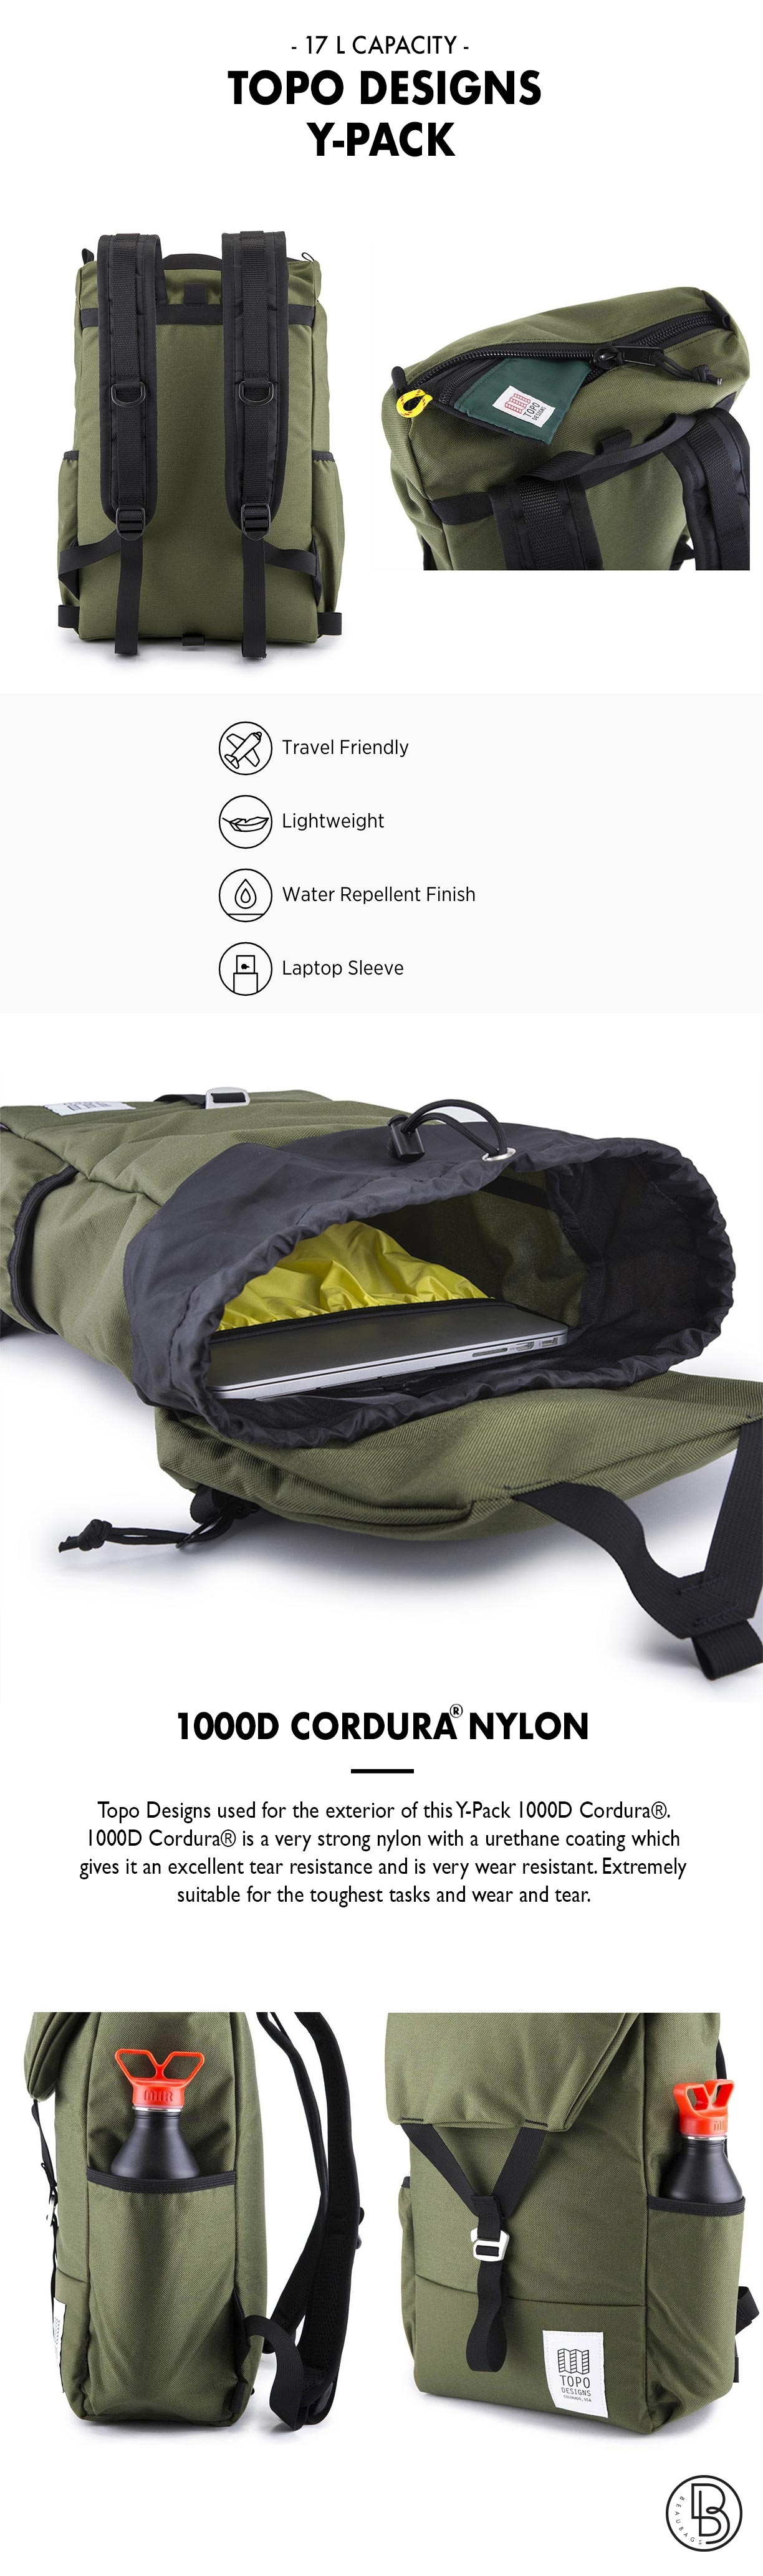 Topo Designs Y-Pack productinformation